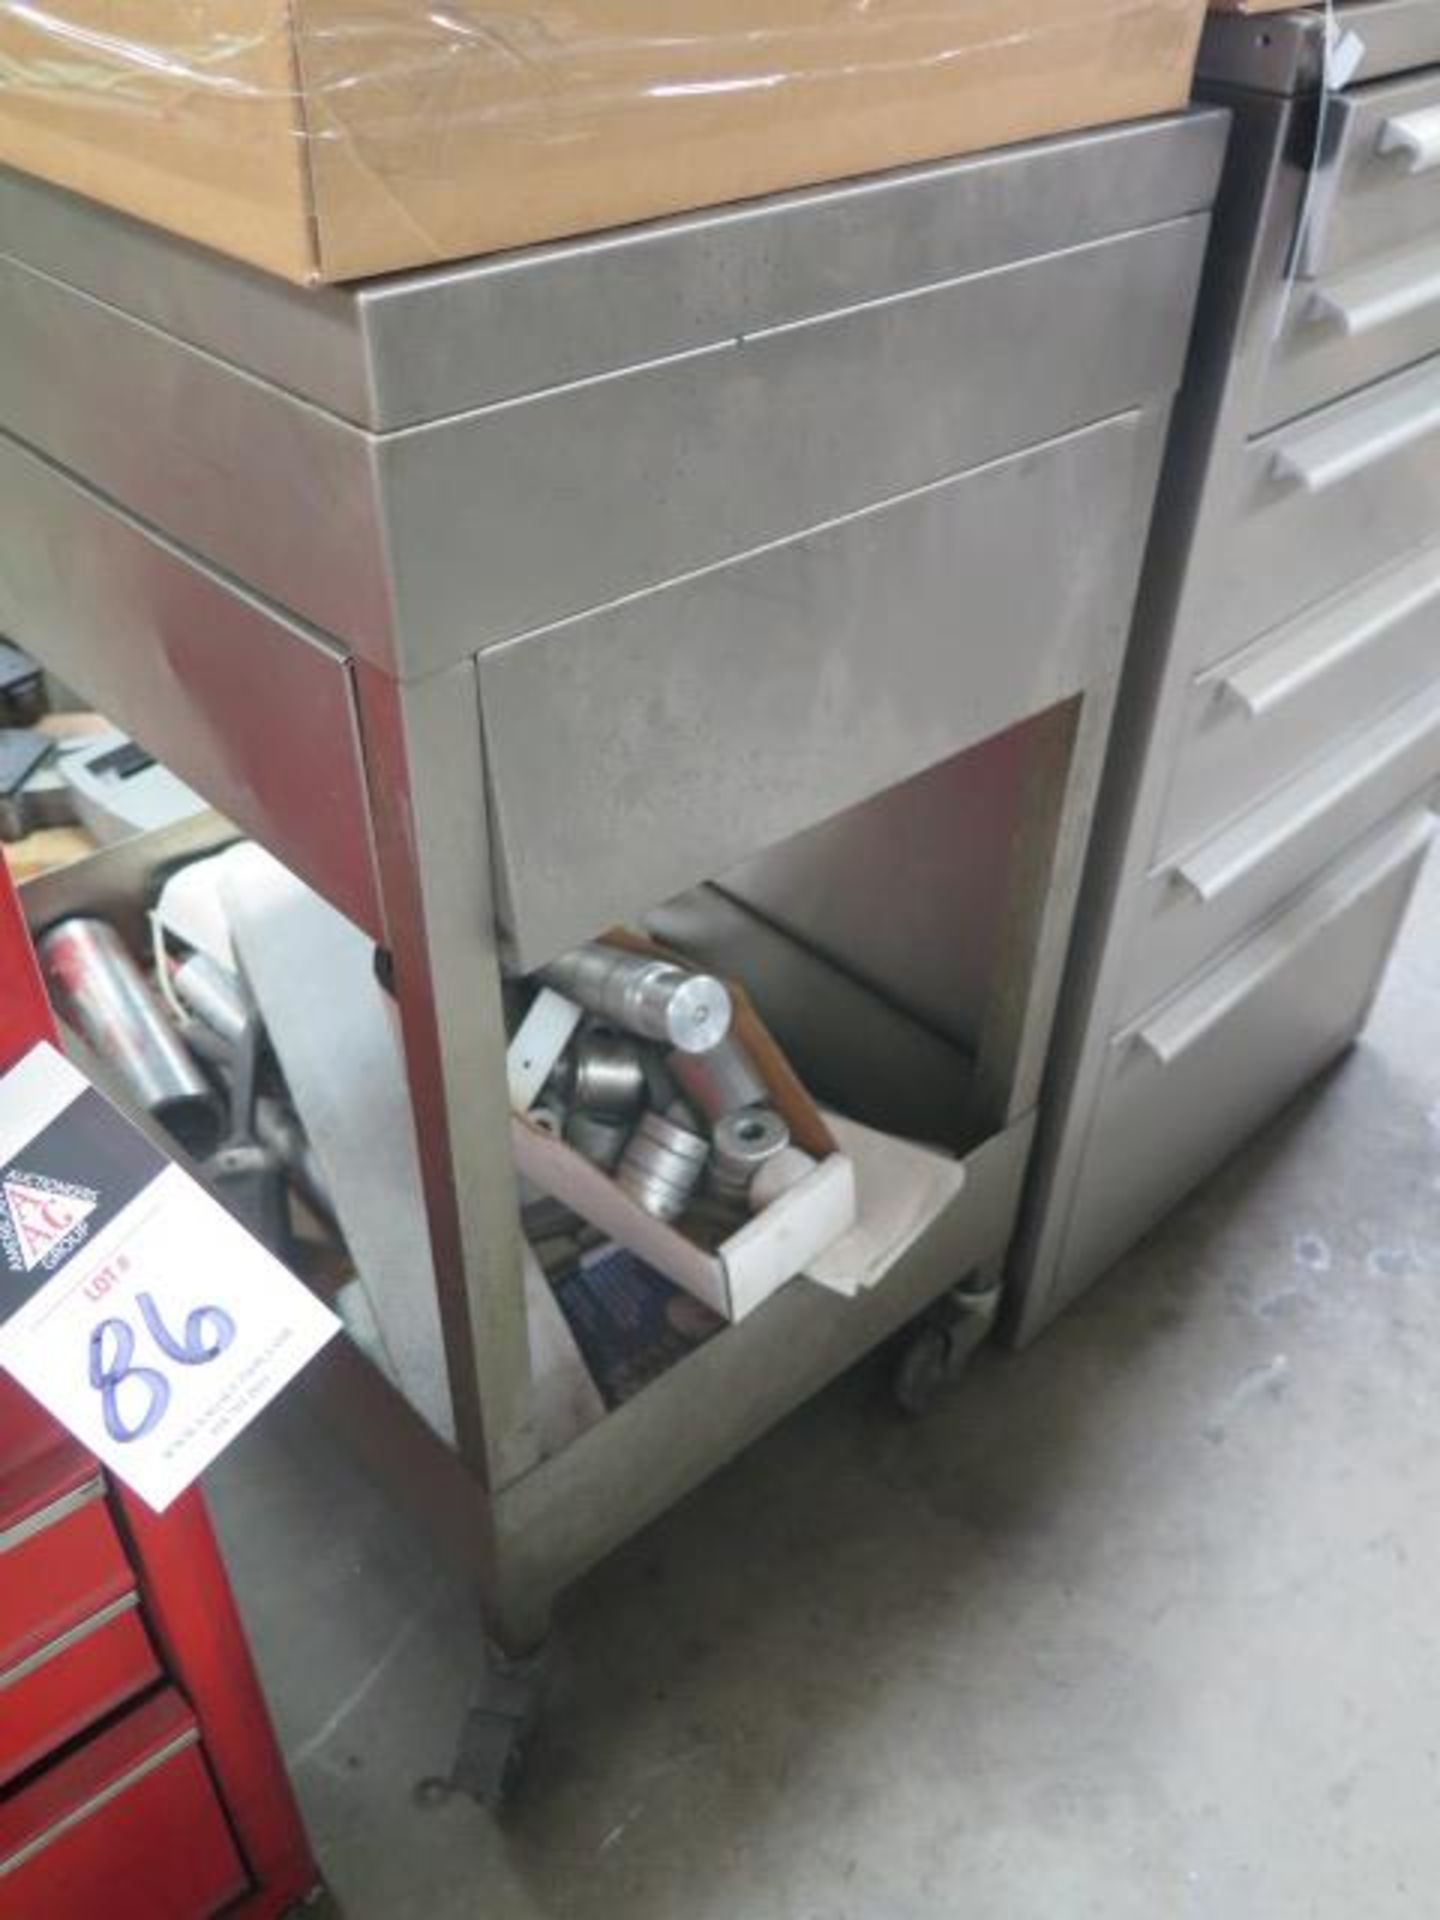 6-Drawer Tooling Cabinet w/ Chuck Jaws (SOLD AS-IS - NO WARRANTY) - Image 9 of 9